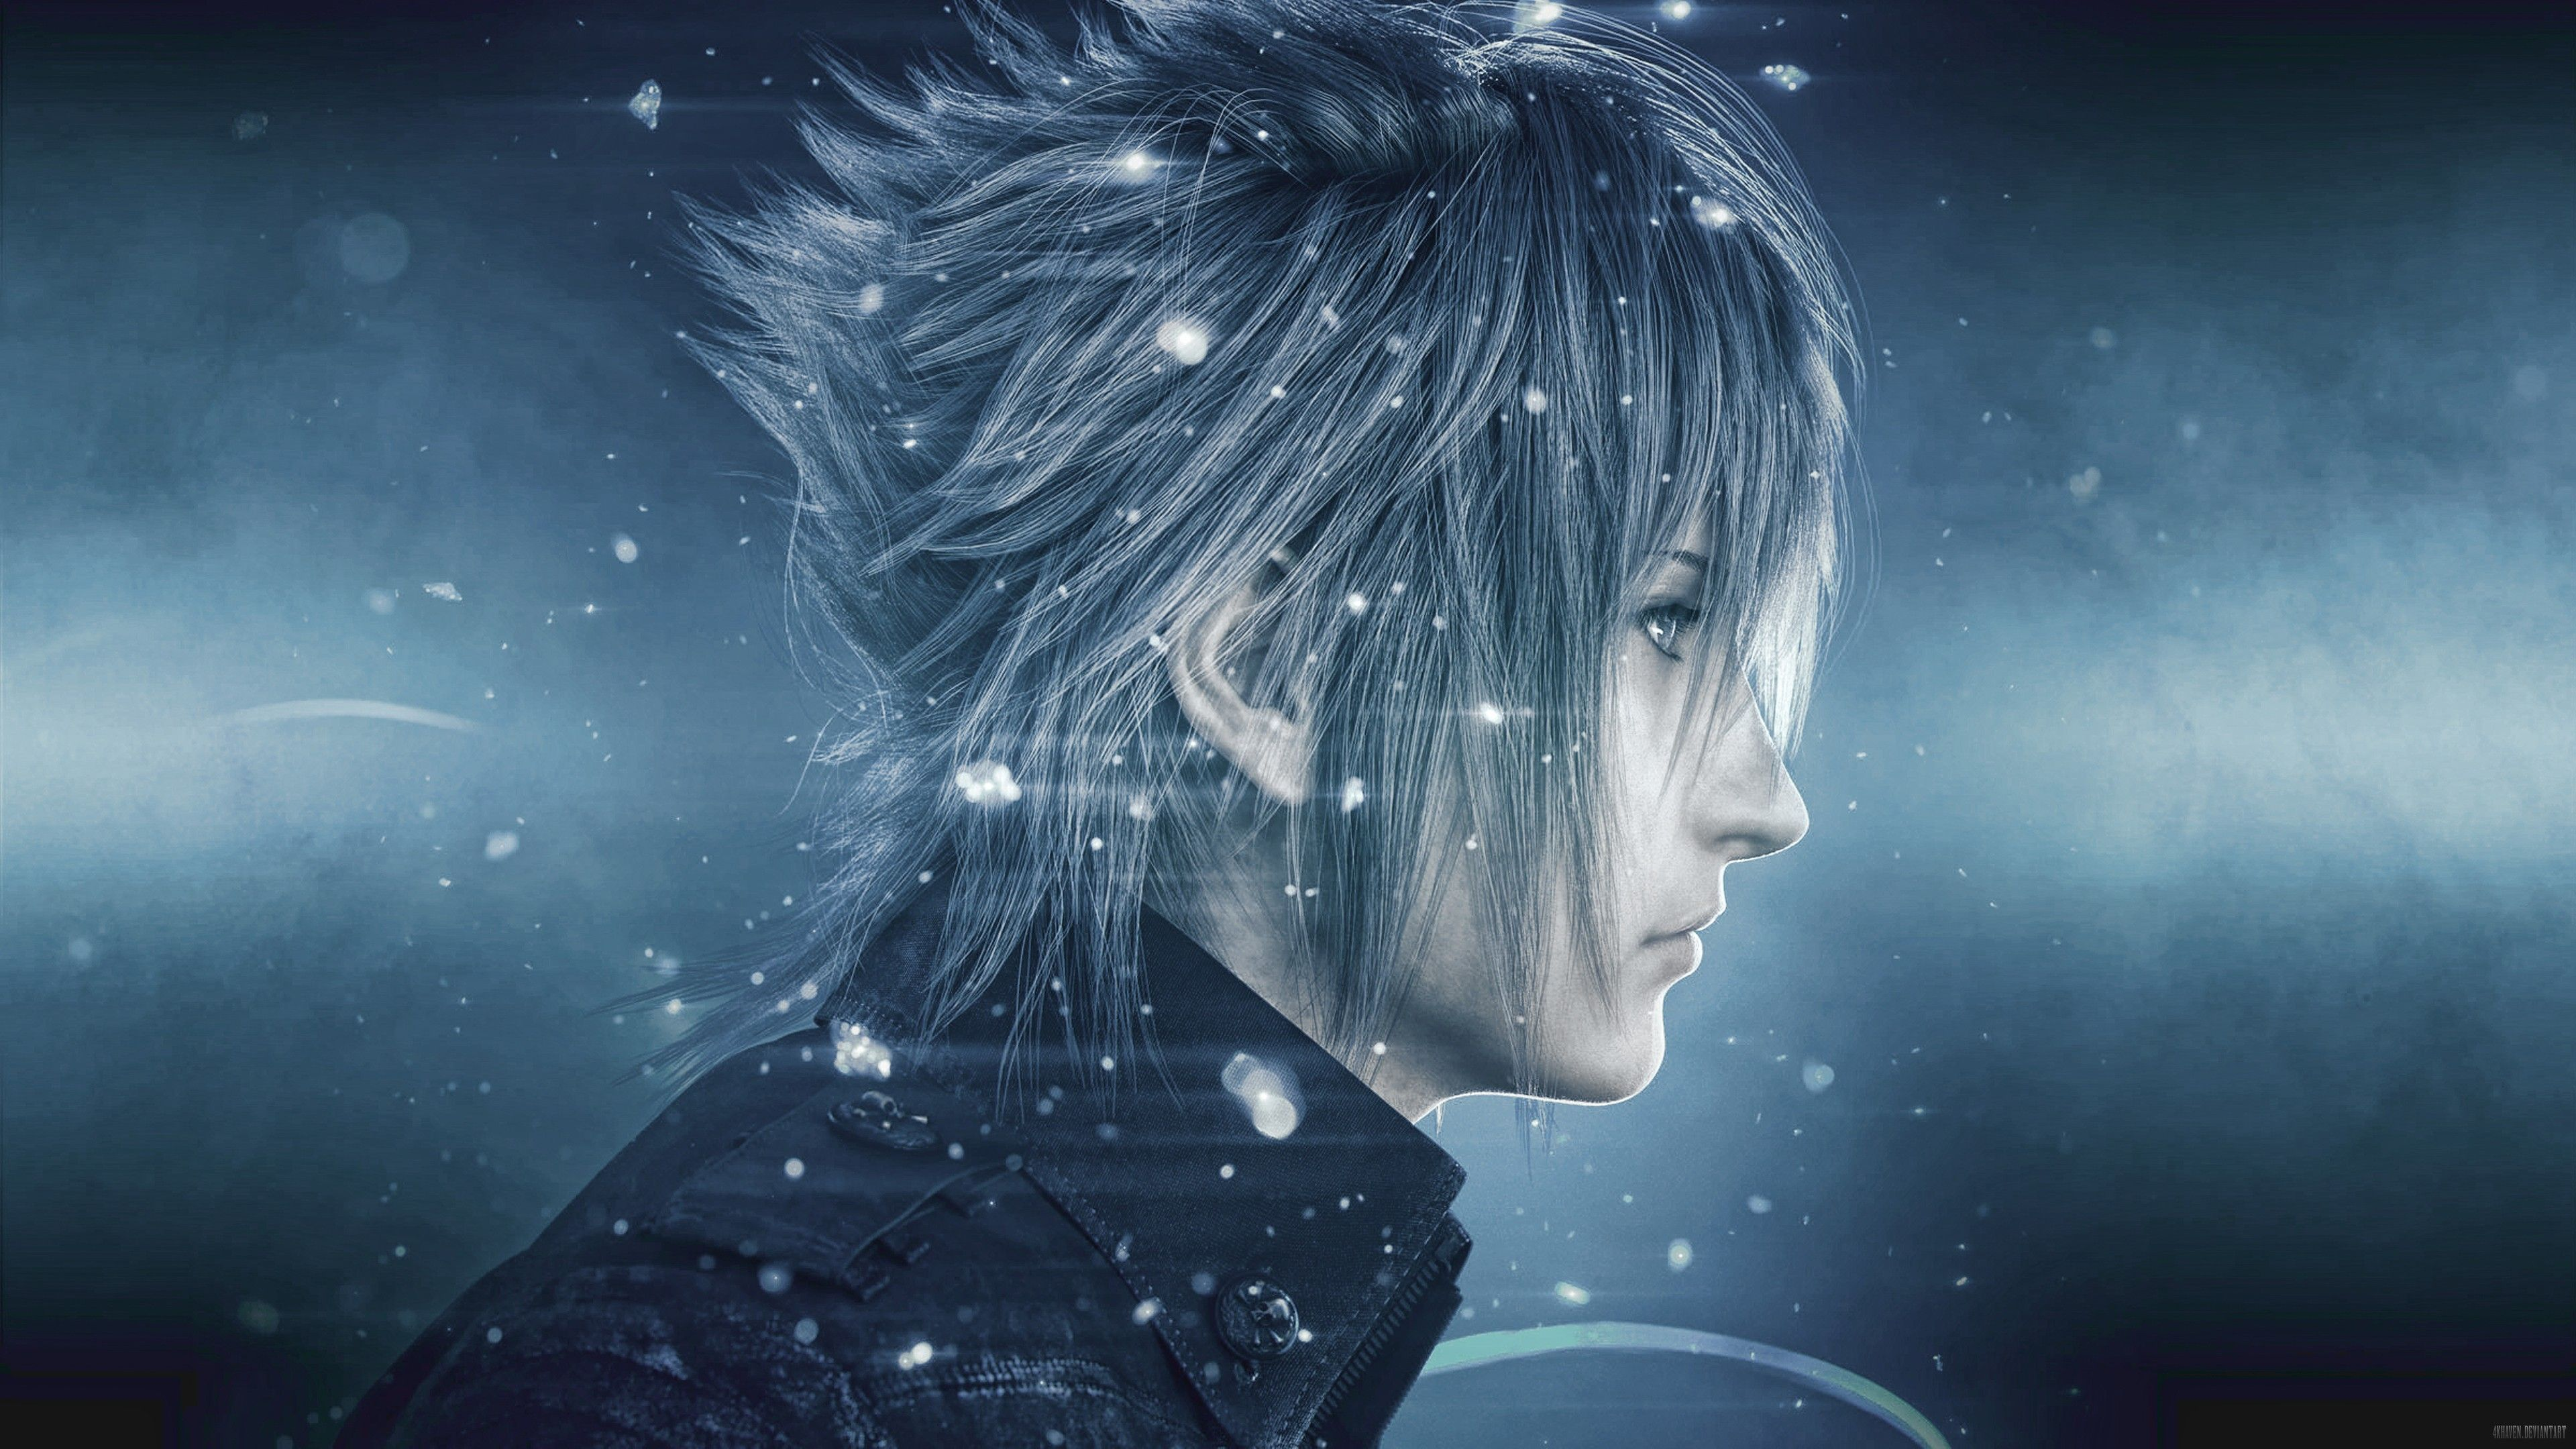 Final Fantasy Xv Wallpapers In Ultra Hd: Final Fantasy XV Noctis, HD Games, 4k Wallpapers, Images